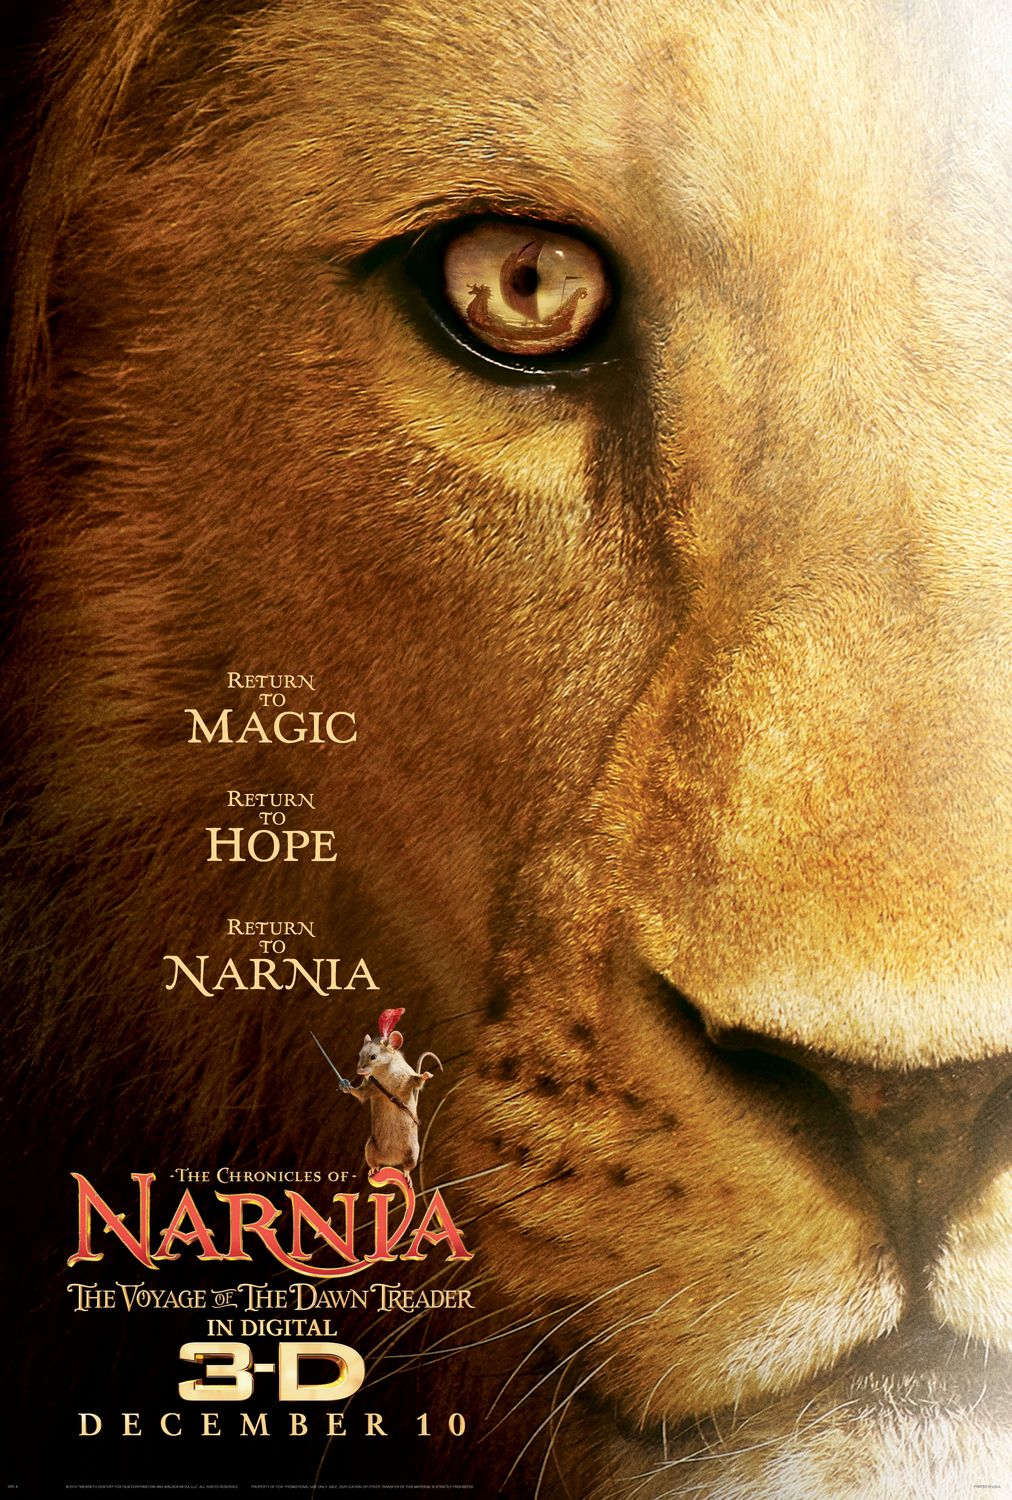 narnia 3 movie poster teaser trailer